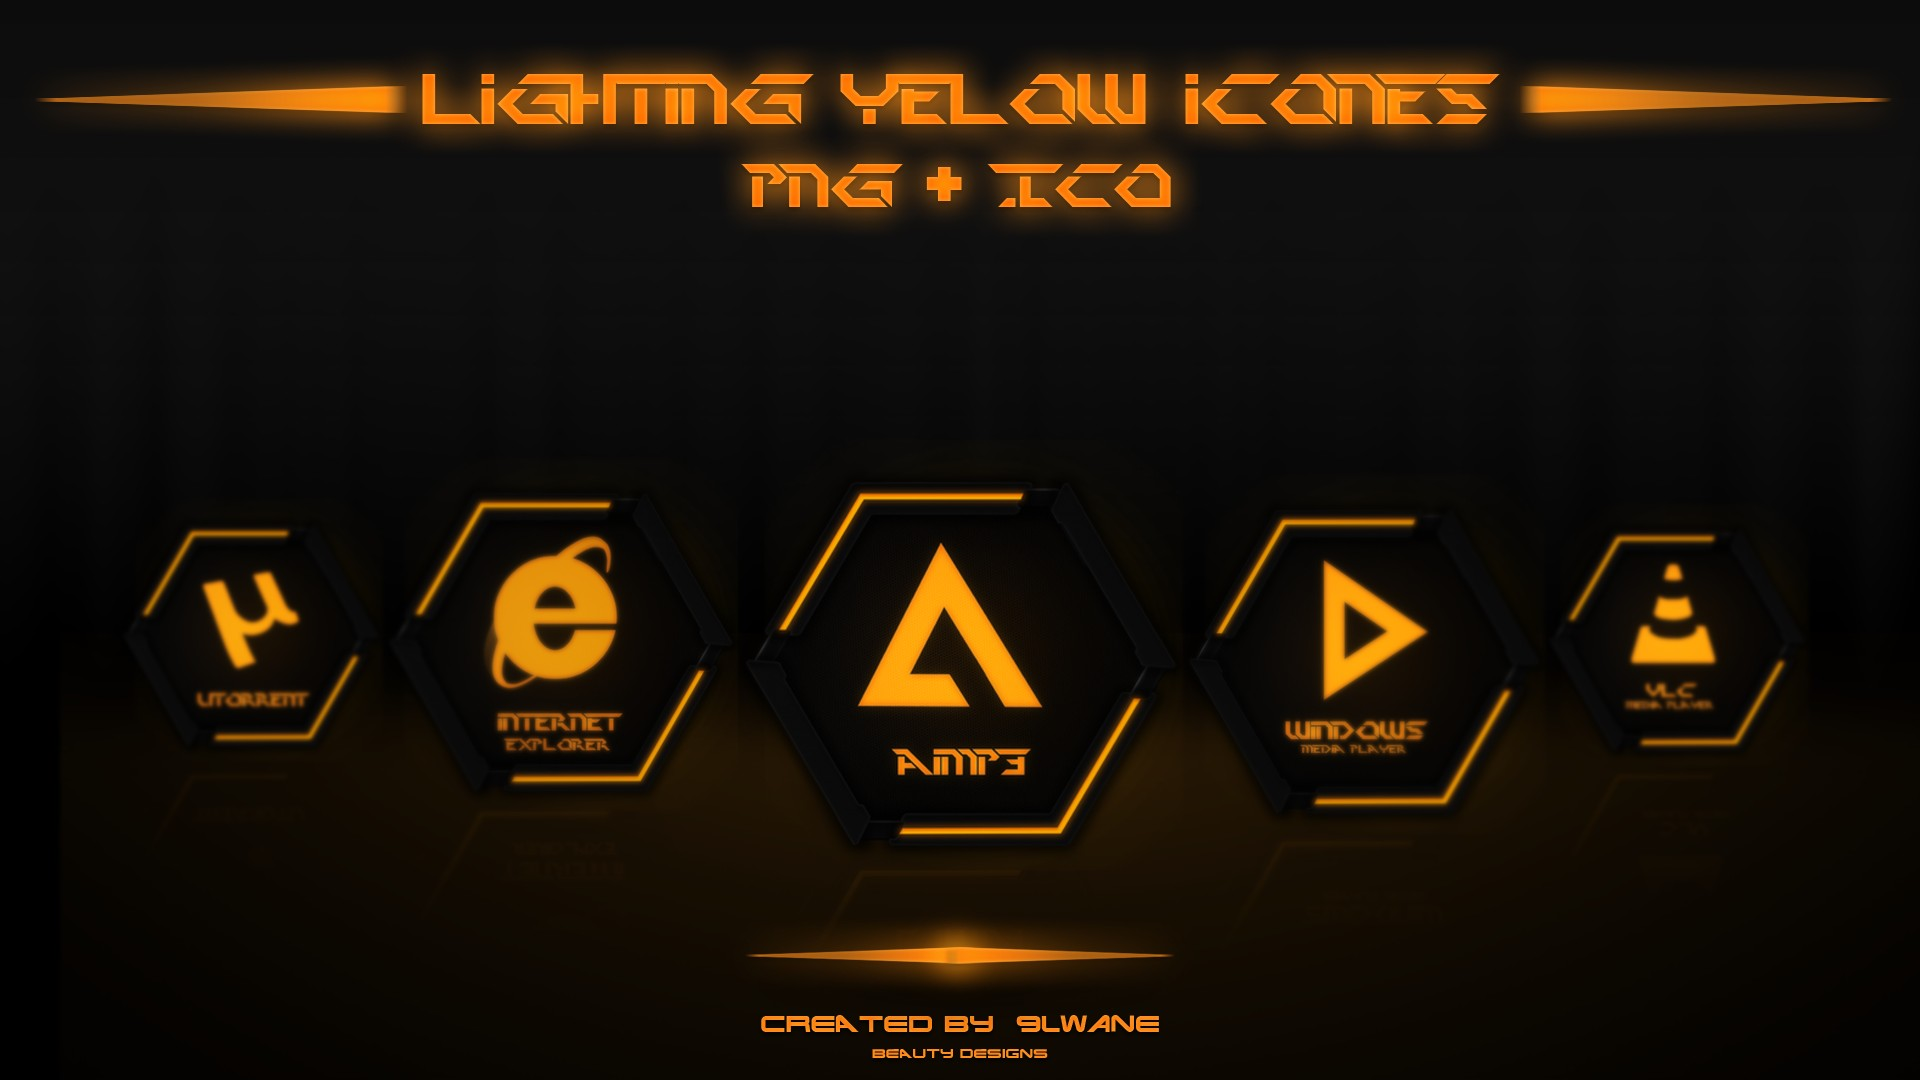 Lighting Yellow